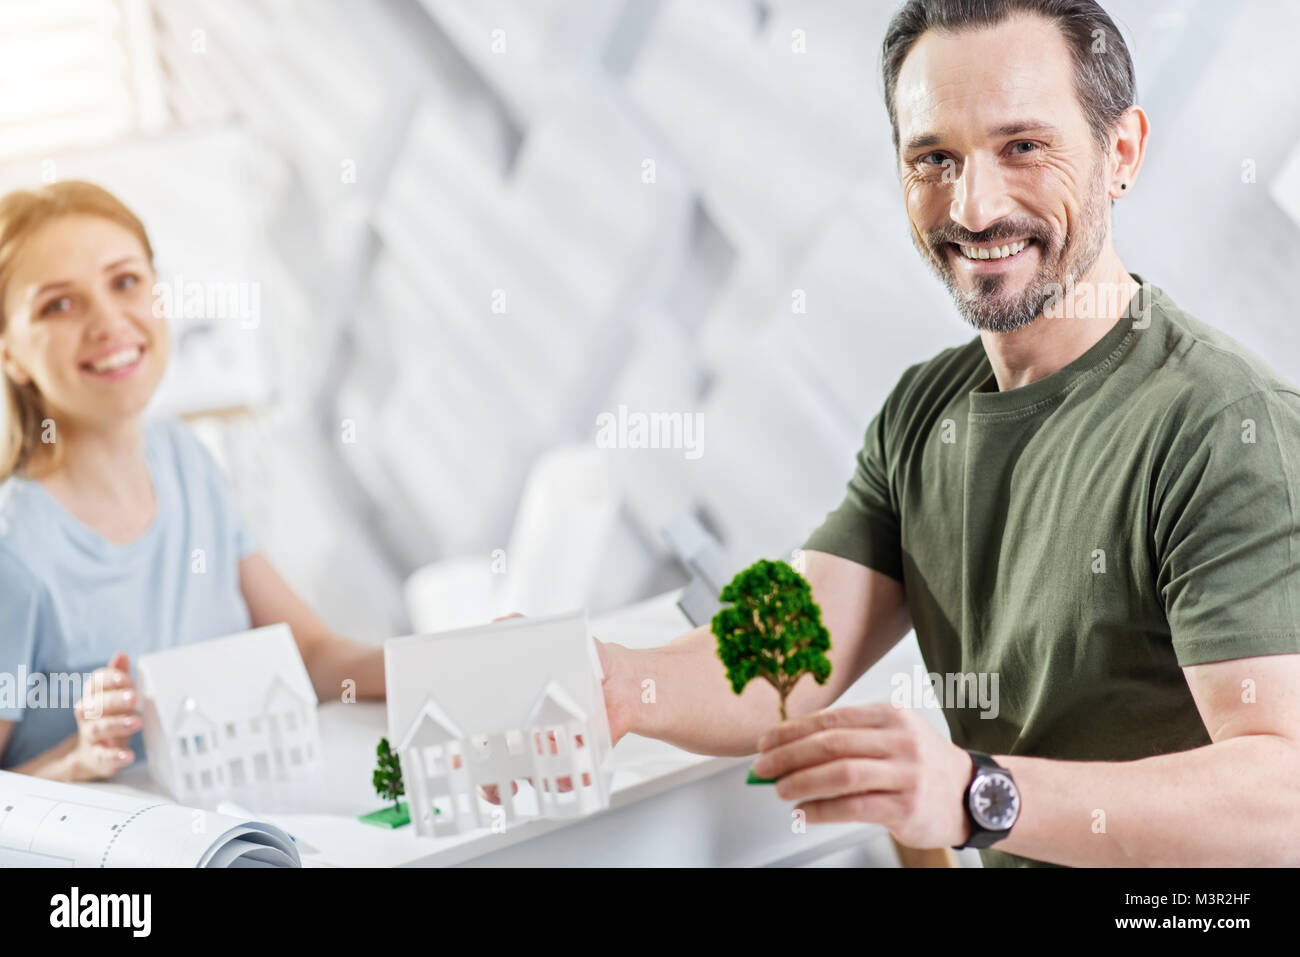 Gleeful ecologist working with his colleague - Stock Image